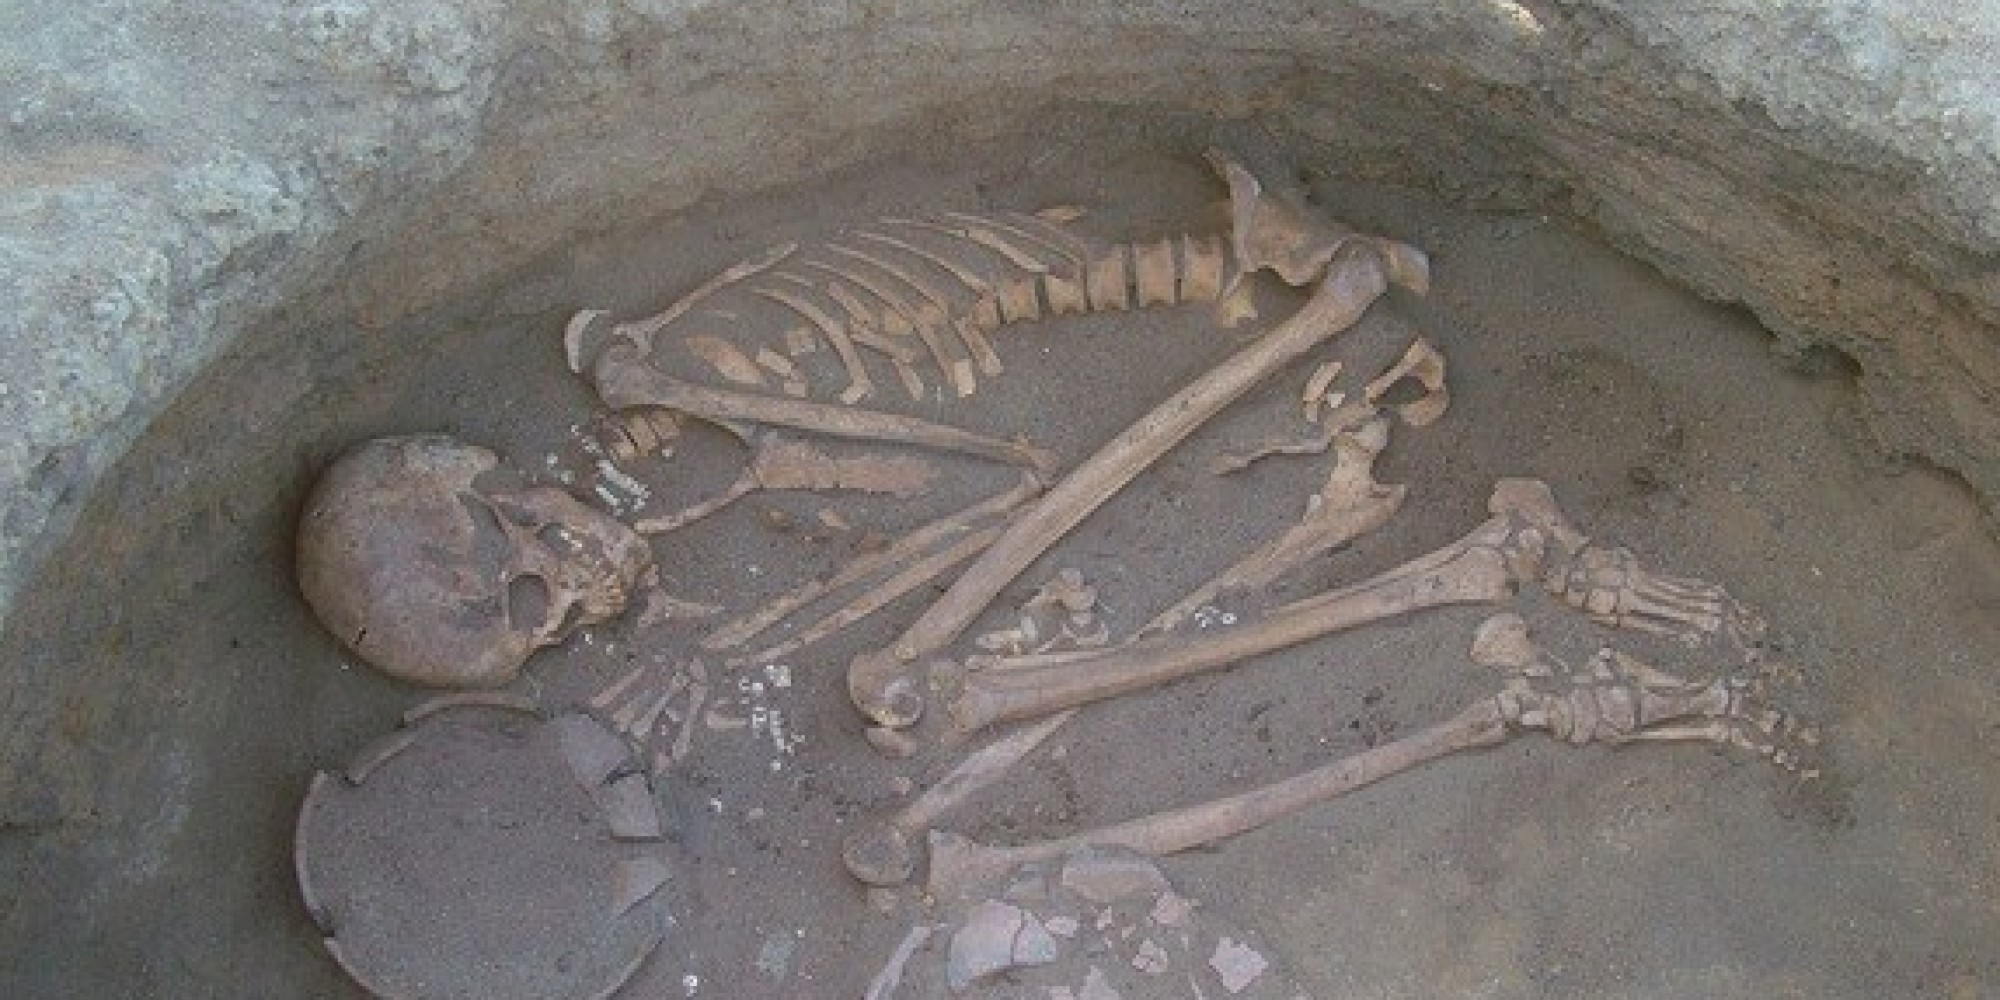 Prehistoric Plaque Reveals What Early Humans Ate